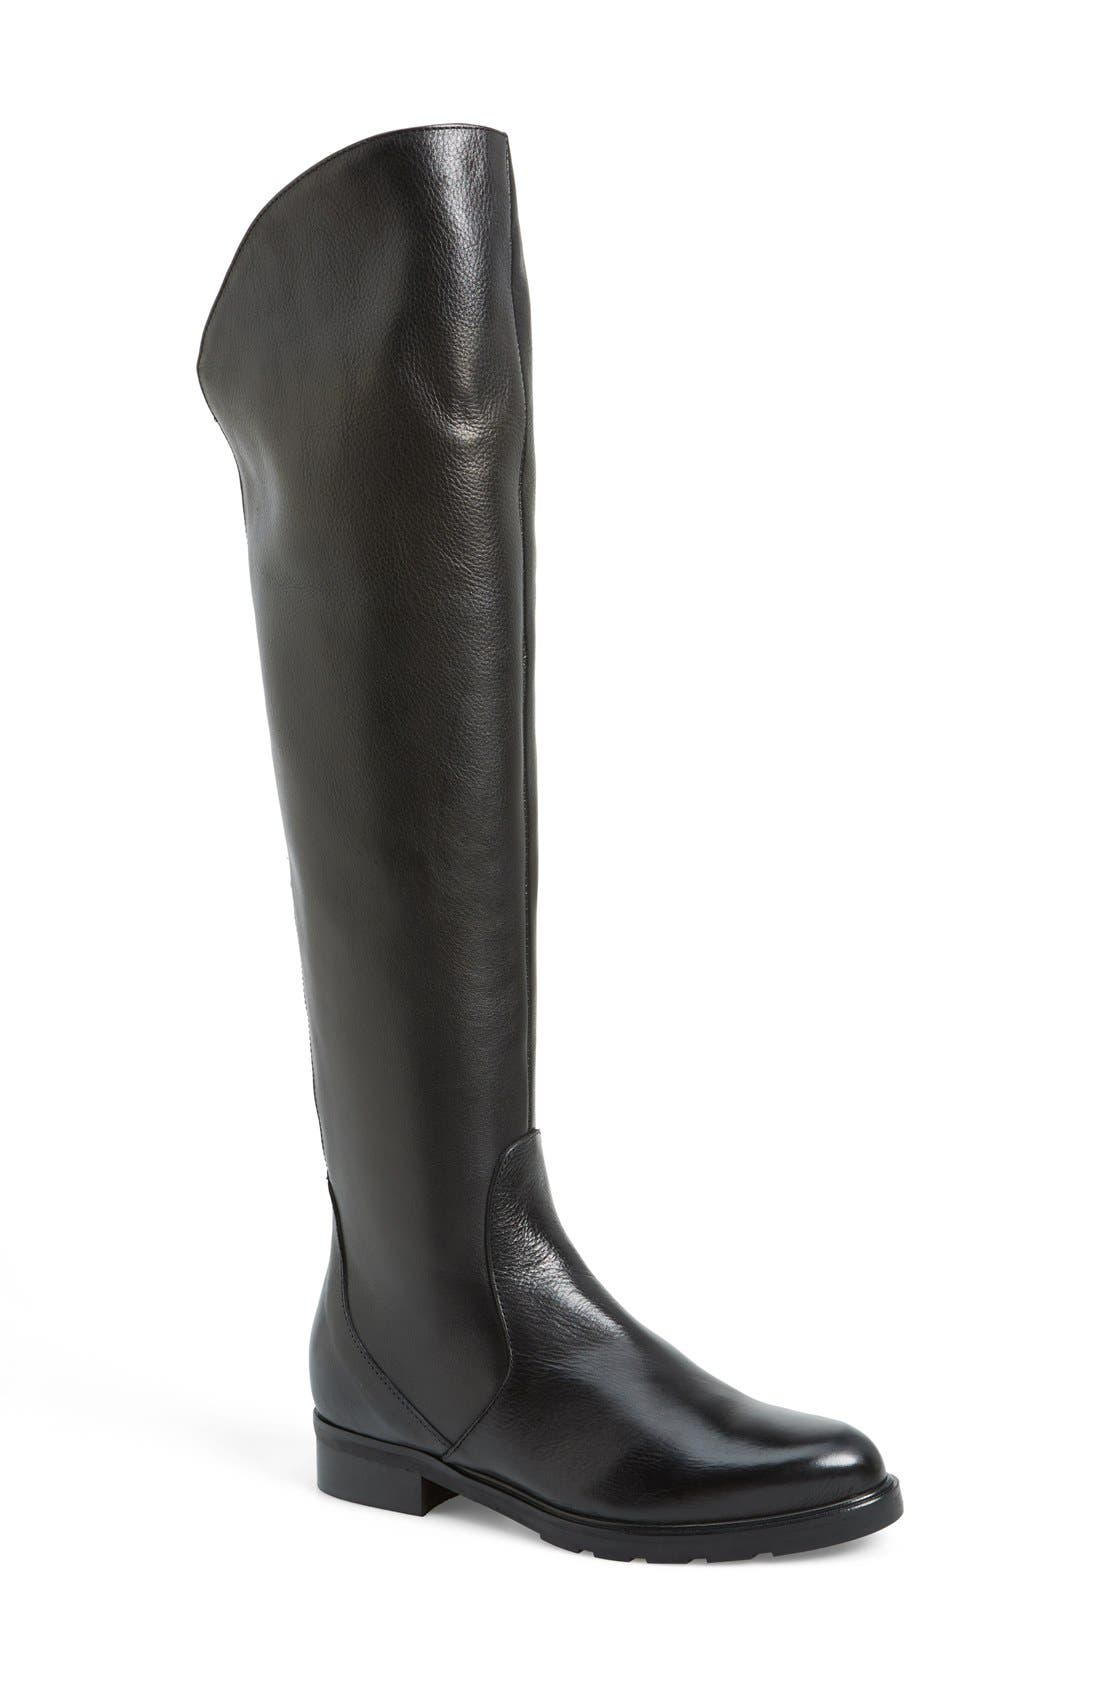 'Berenson' Elastic Back Over the Knee Boot, Main, color, 002